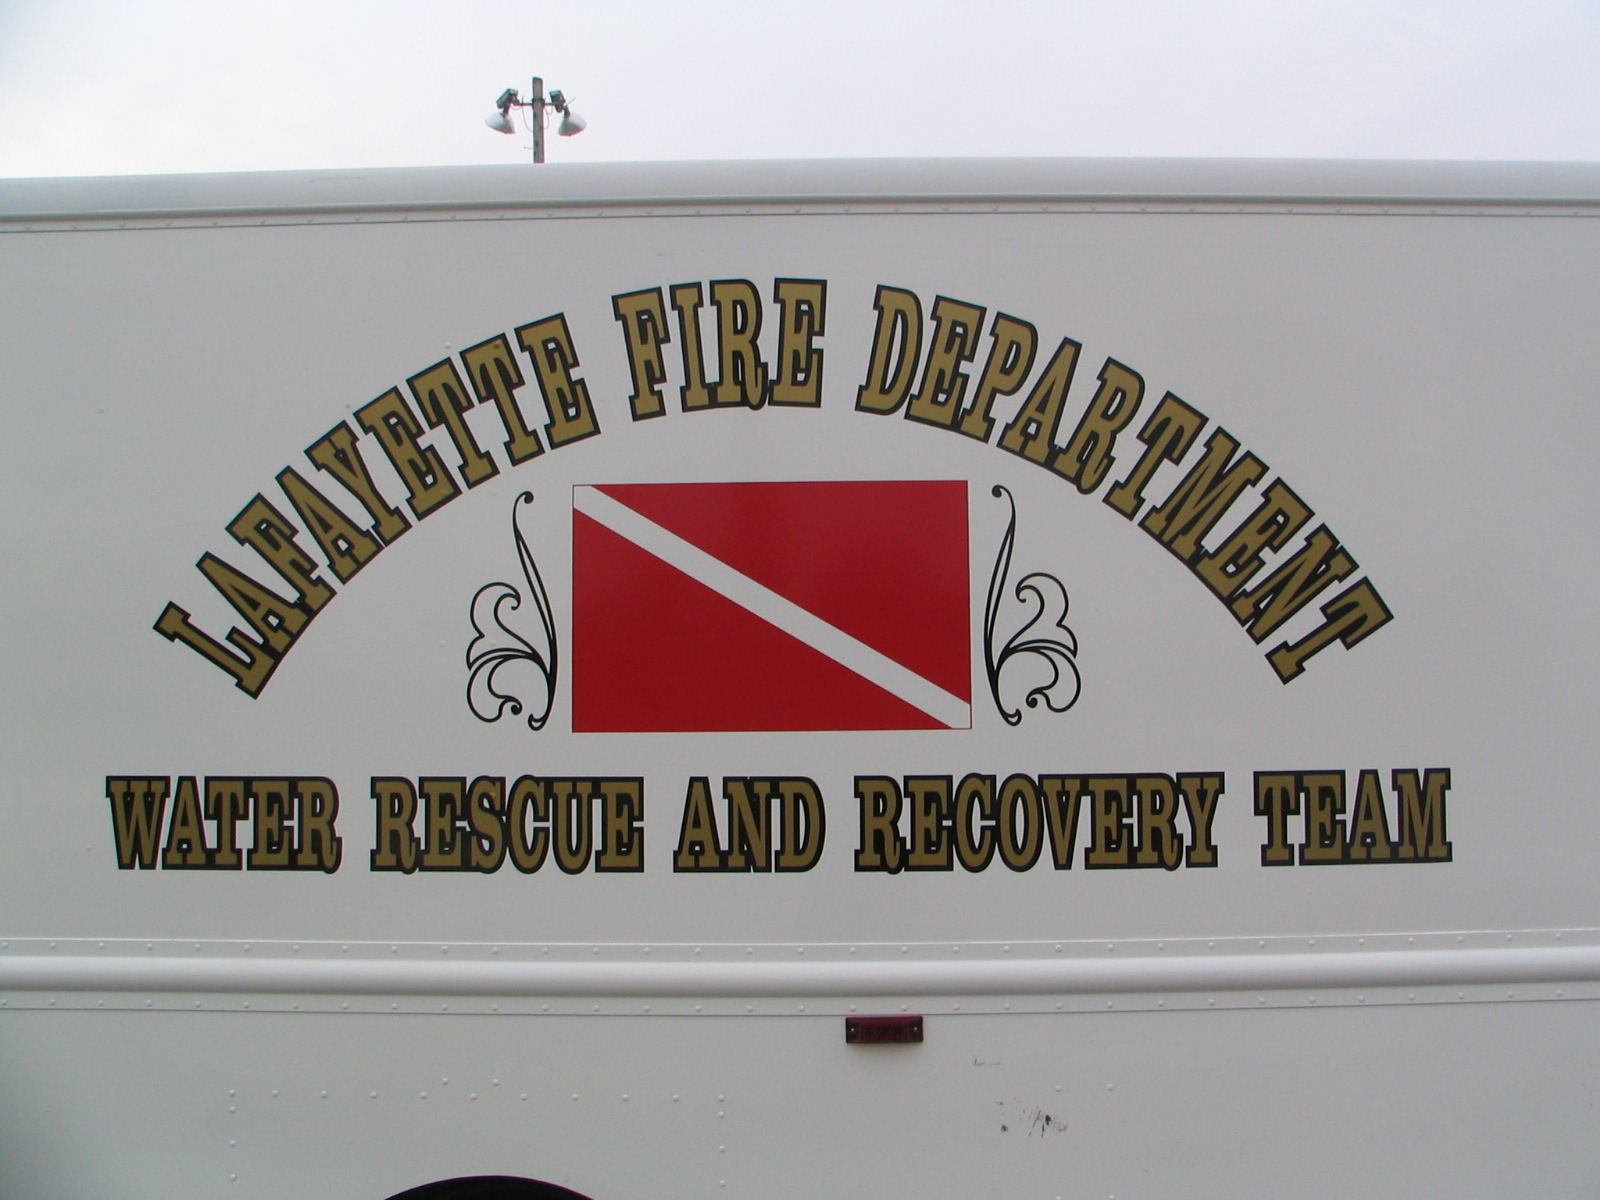 Lafayette Fire Department Water Search and Recovery Team